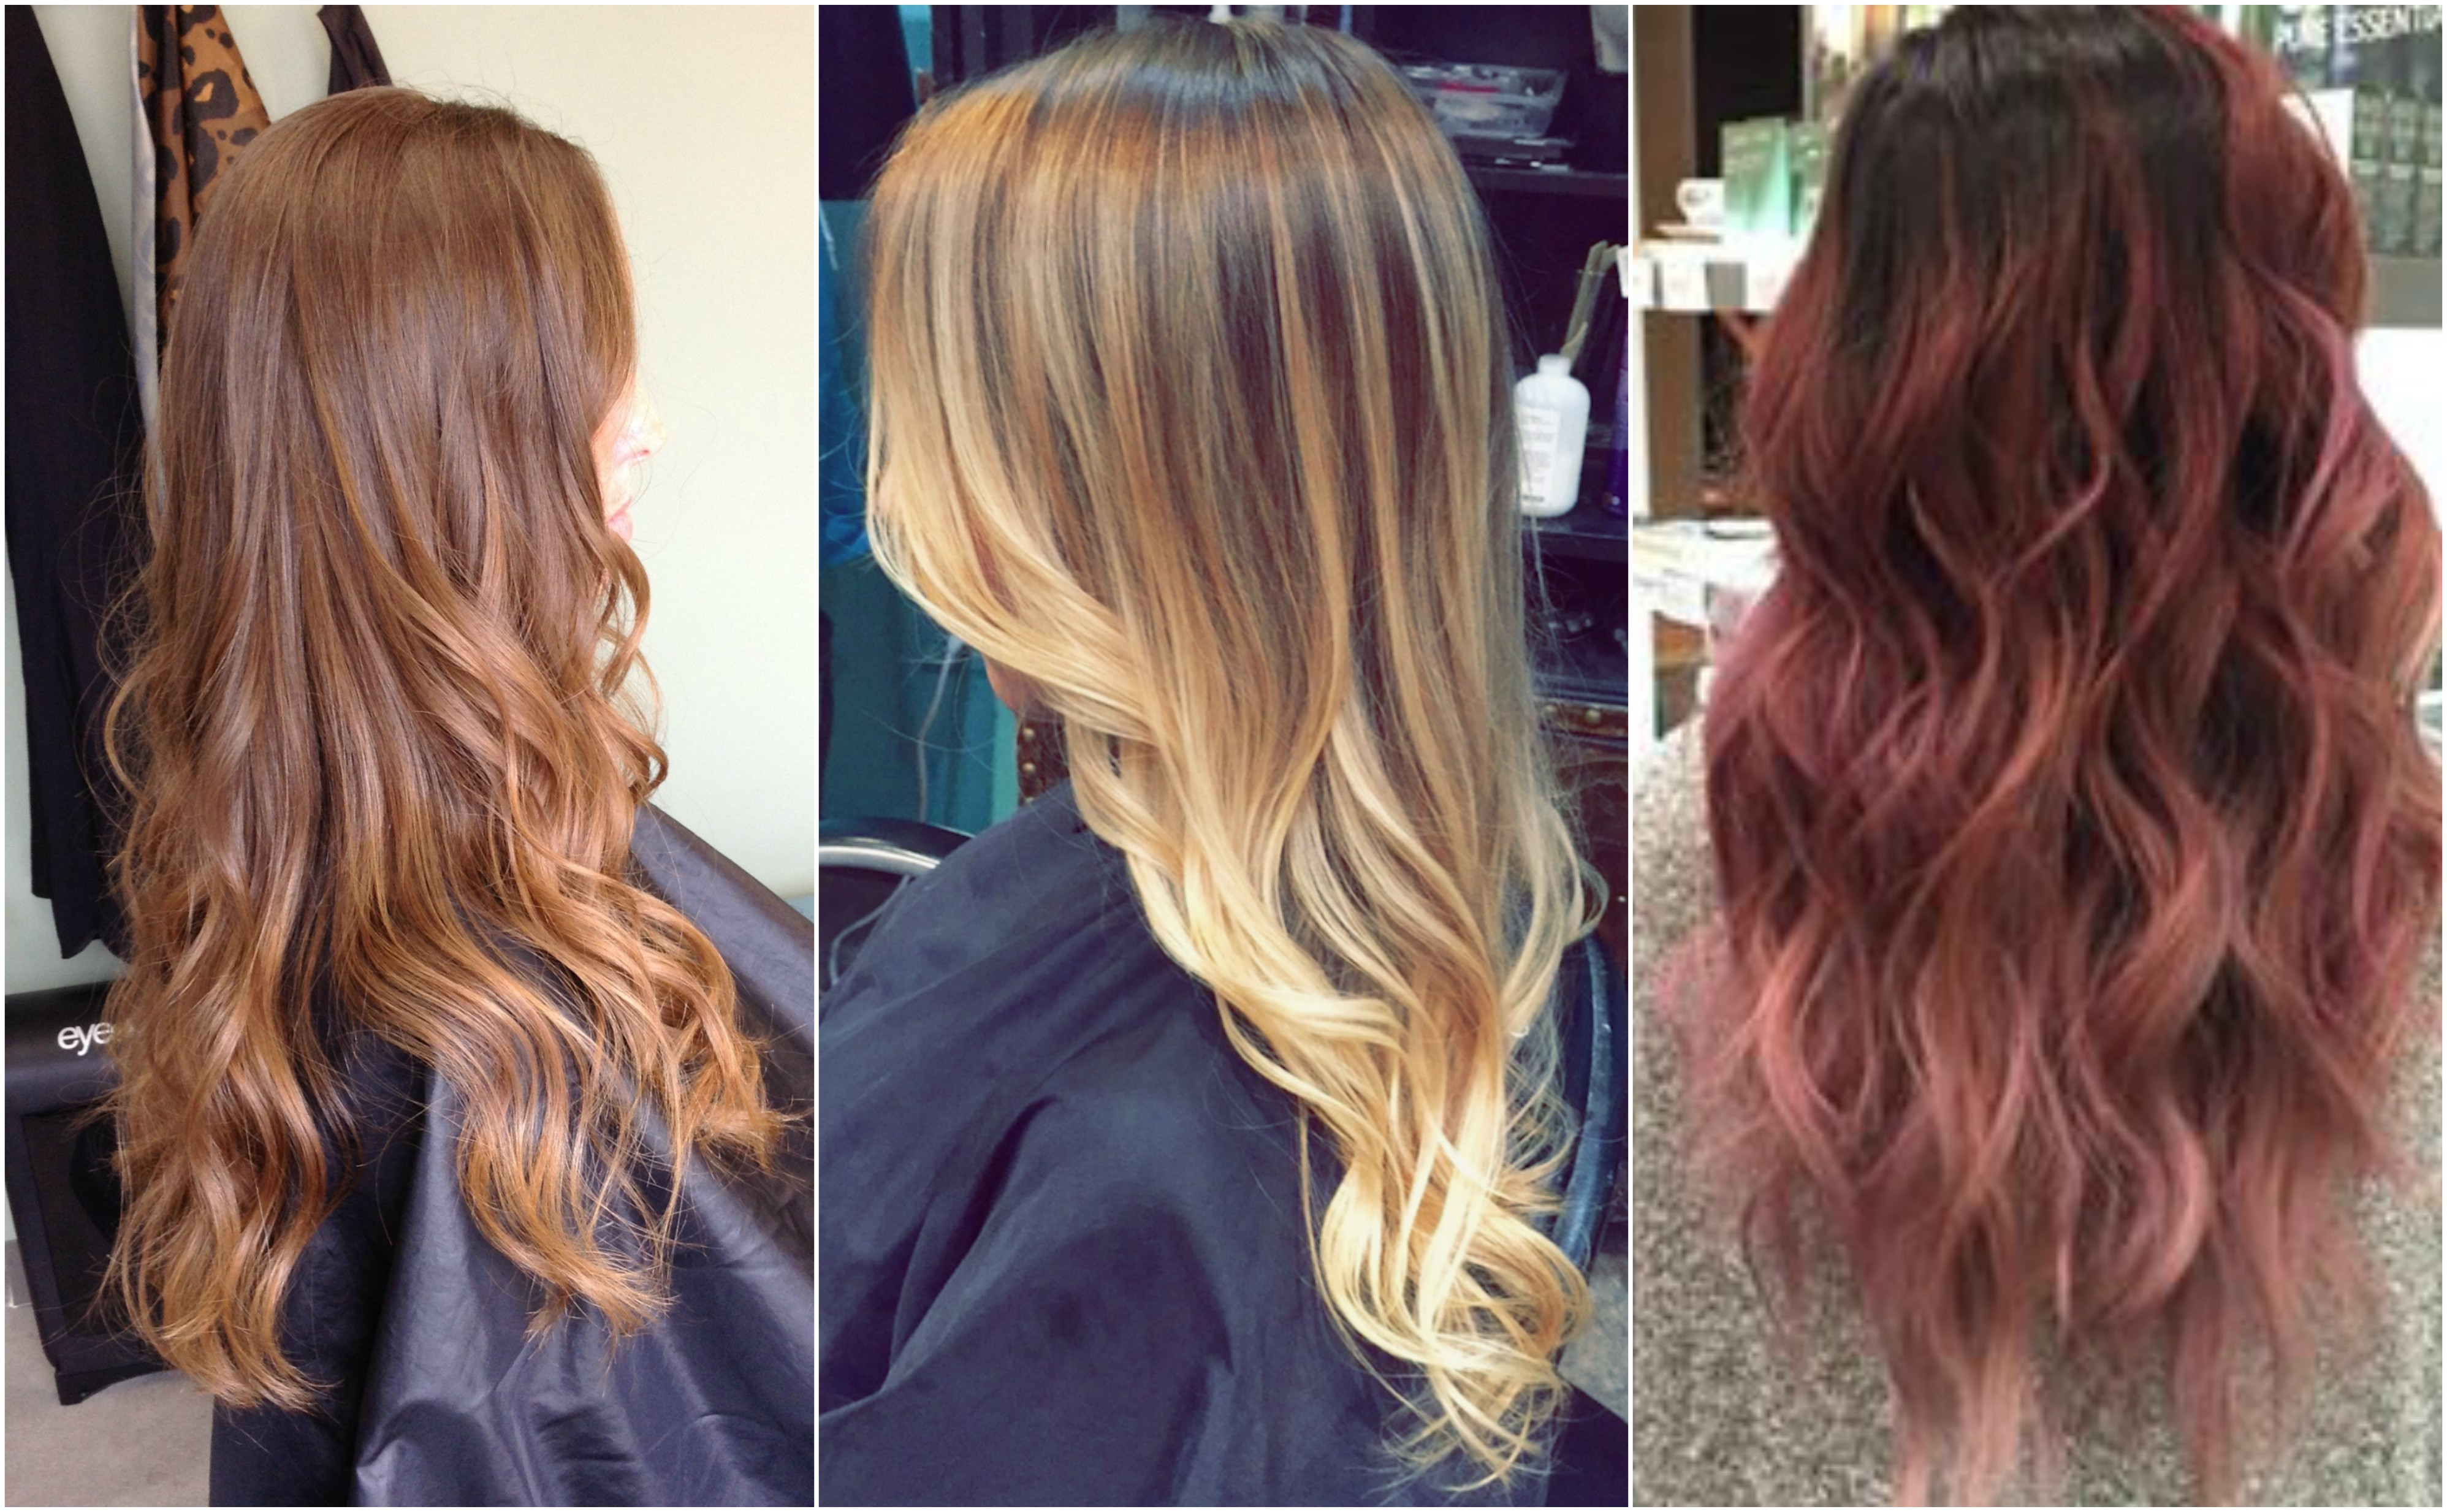 How to color melt your hair: It's not as extreme as it sounds!